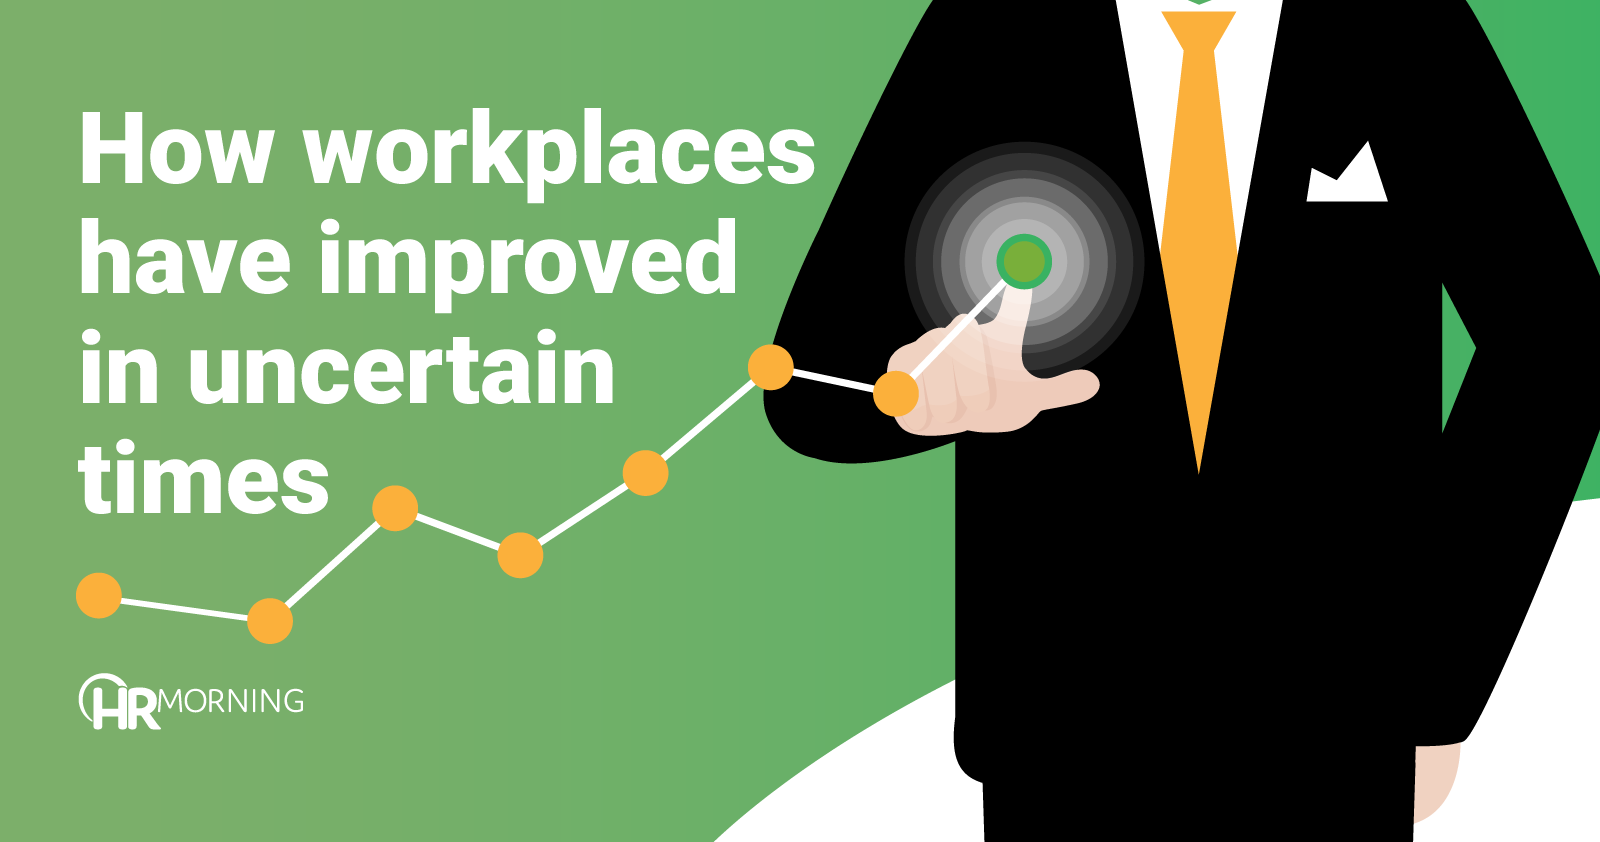 How workplaces have improved in uncertain times